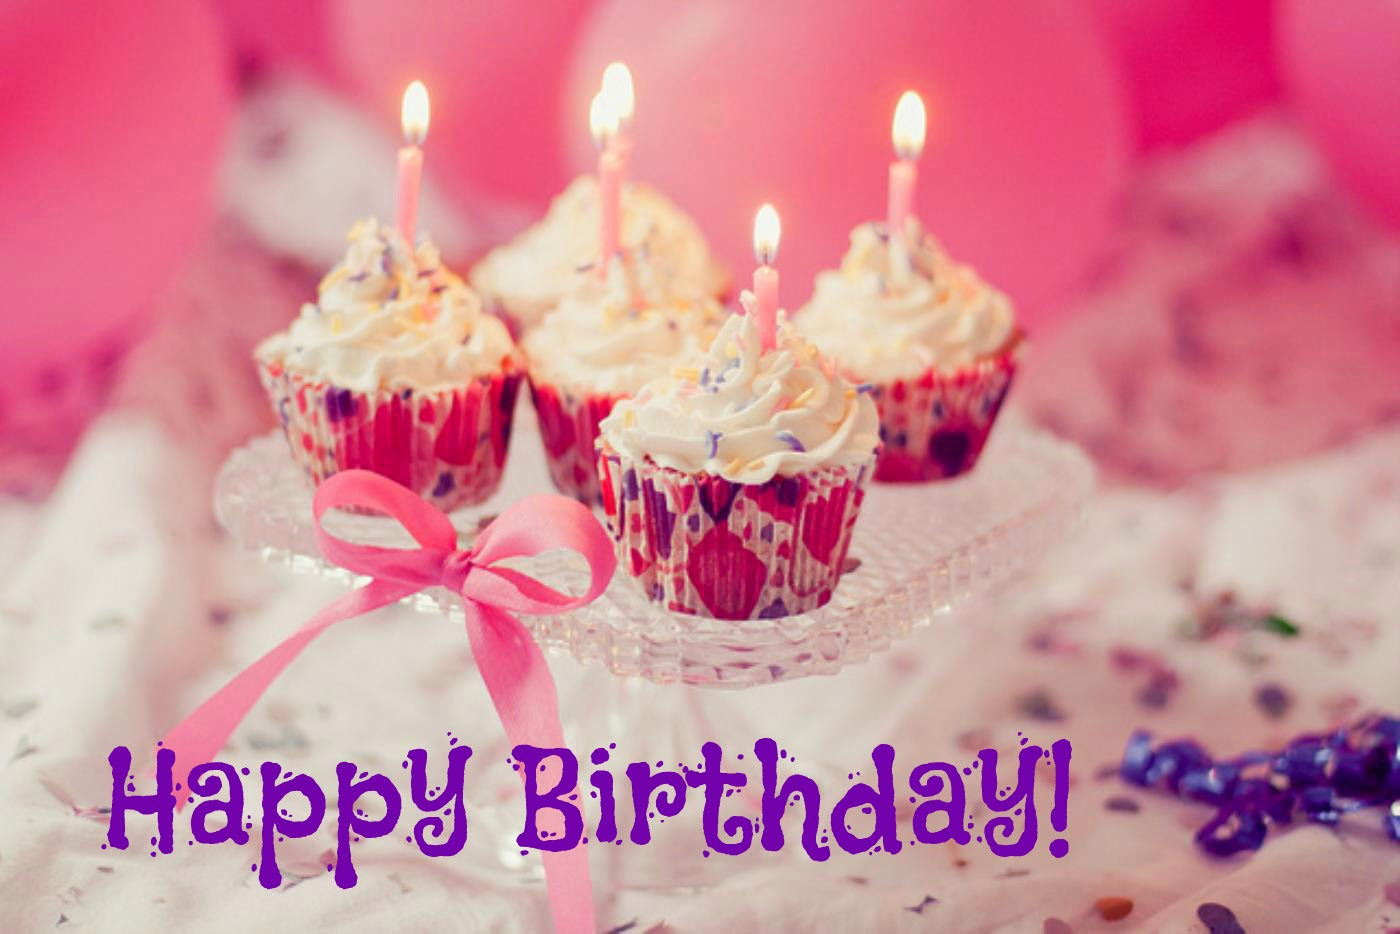 happy birthday wishes card images with cakes, candles picture for